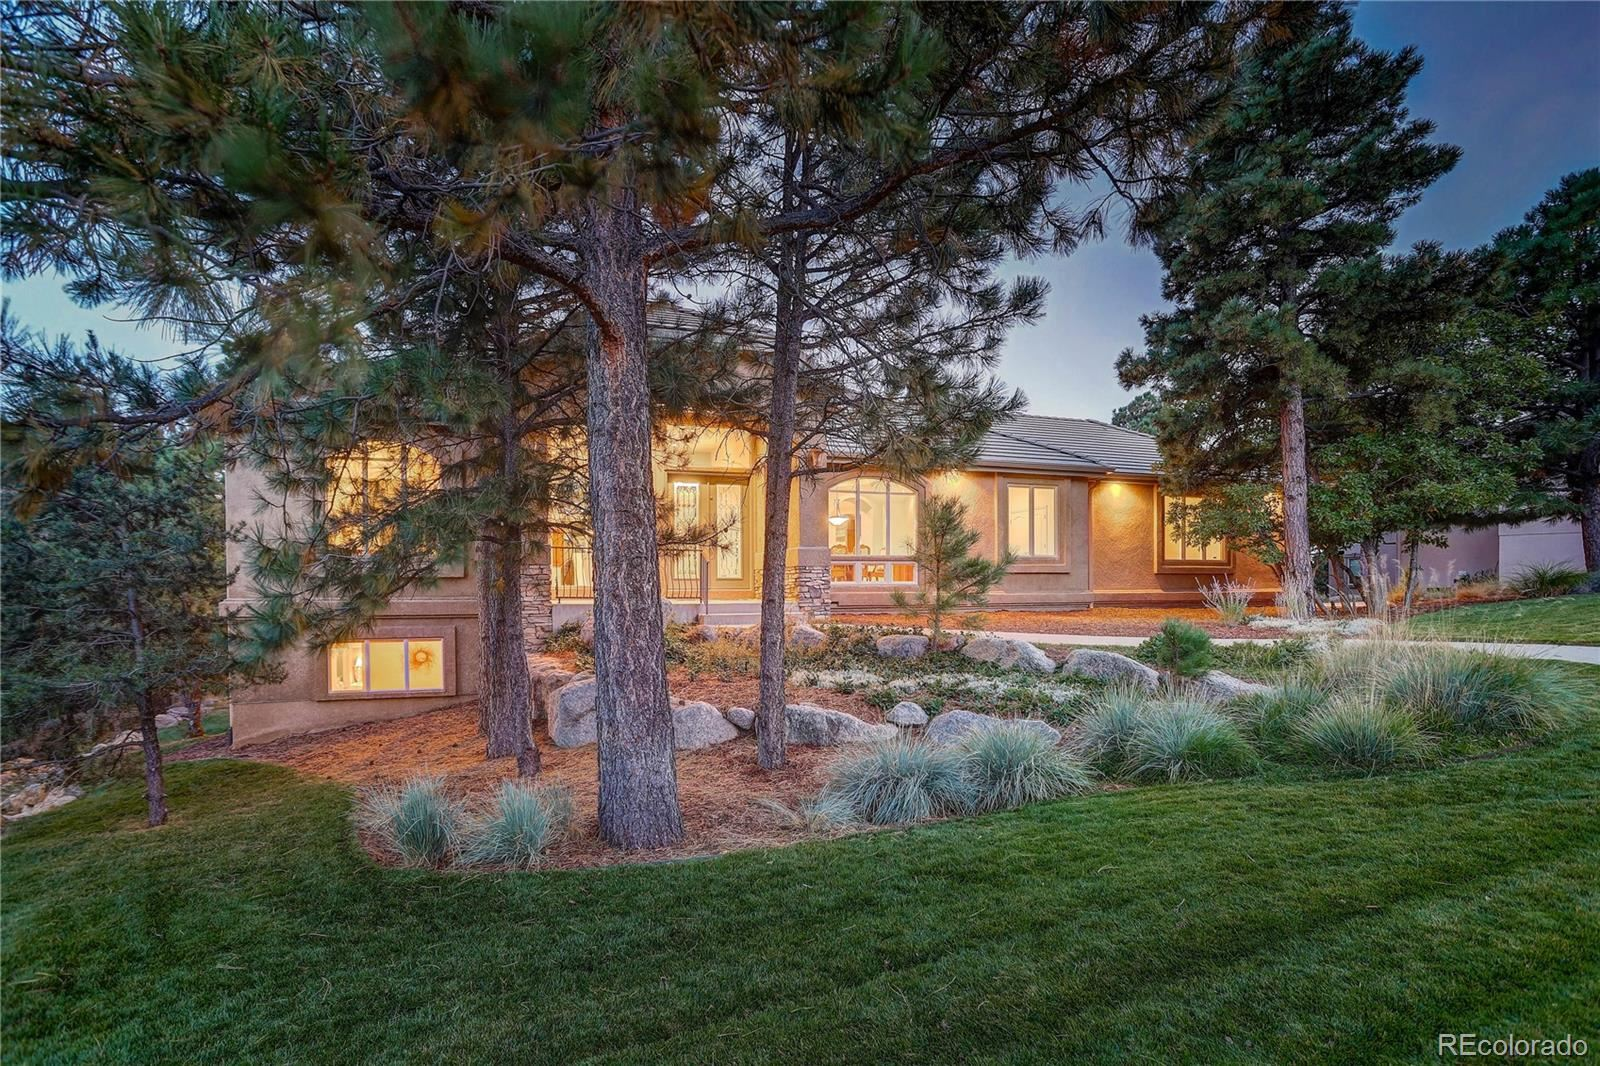 Photo of 5975 Buttermere Drive, Colorado Springs, CO 80906 (MLS # 2265496)